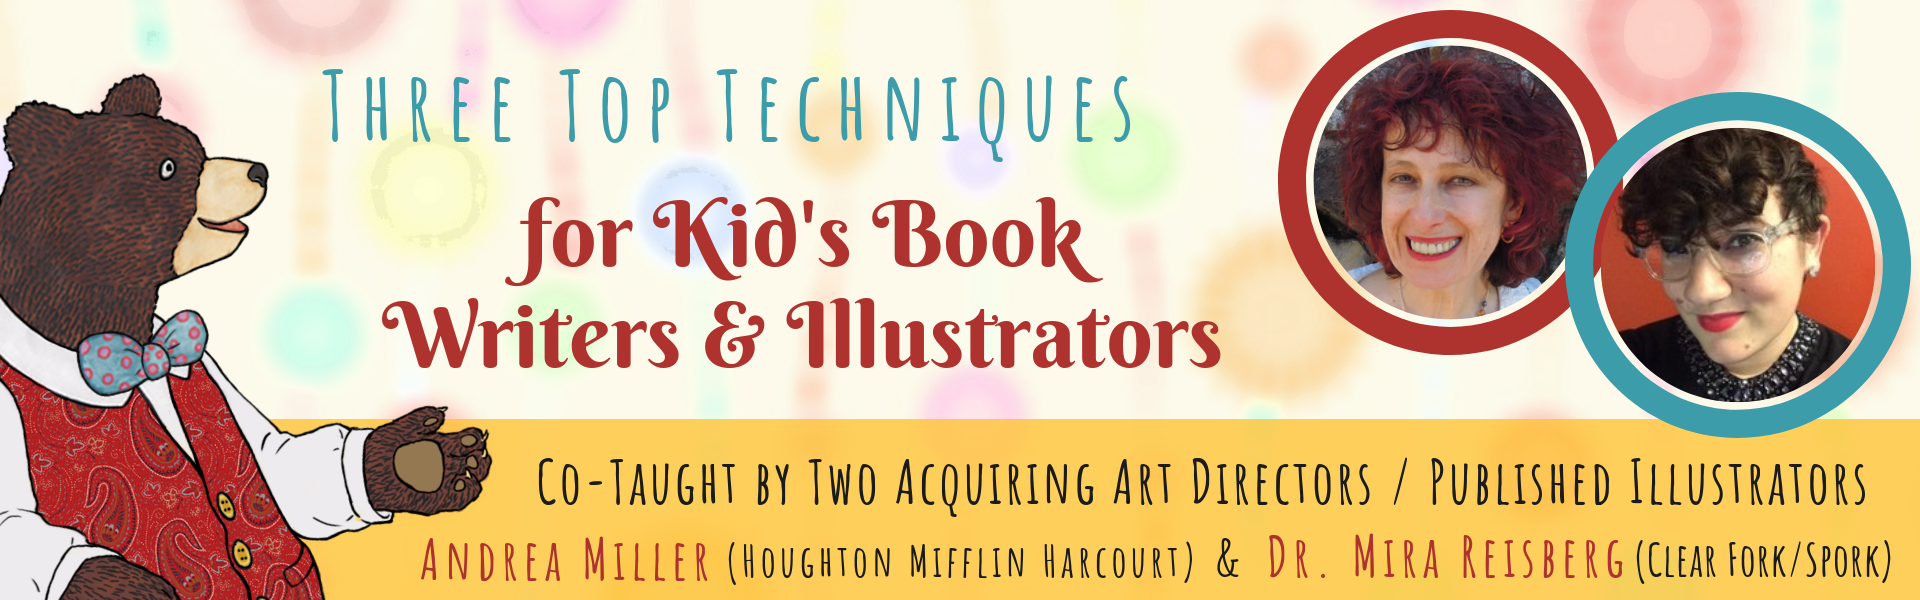 Three Top Techniques for Kid's Book Writers with Andrea Miller and Mira Reisberg at the Children's Book Academy